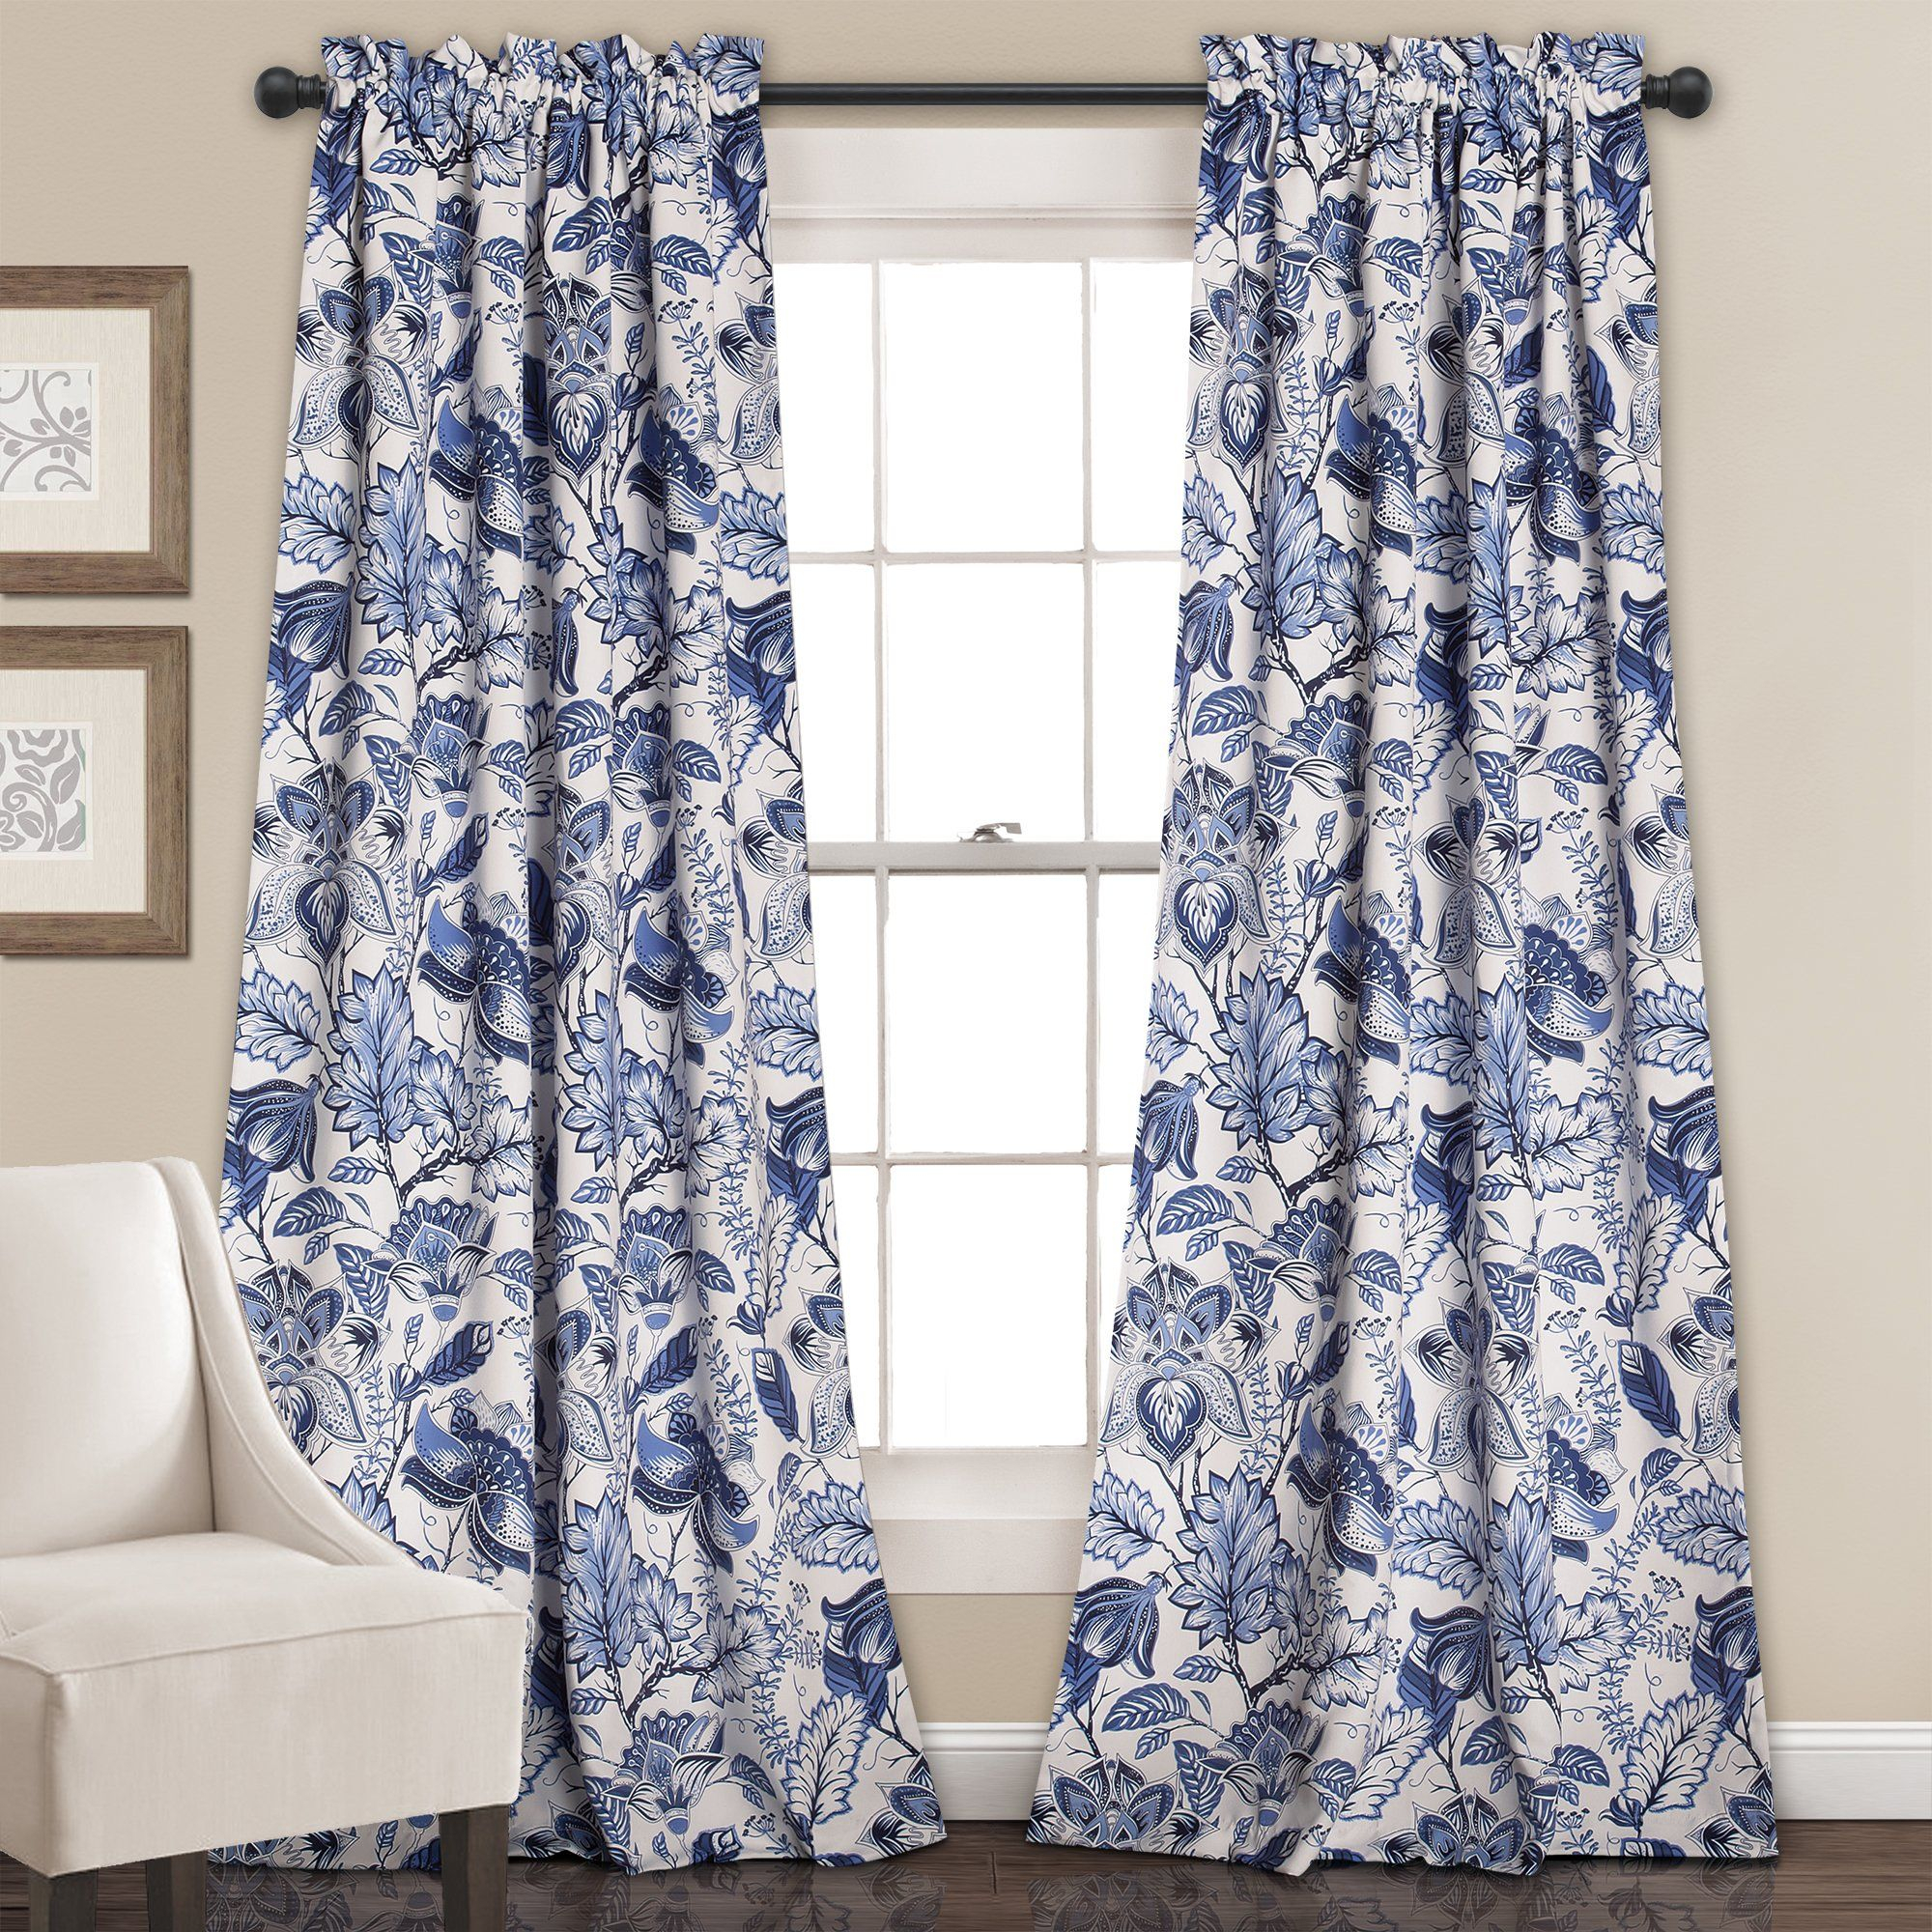 Caldwell Blackout Curtain Panels | Curtains | Room Darkening Throughout Caldwell Curtain Panel Pairs (View 1 of 20)